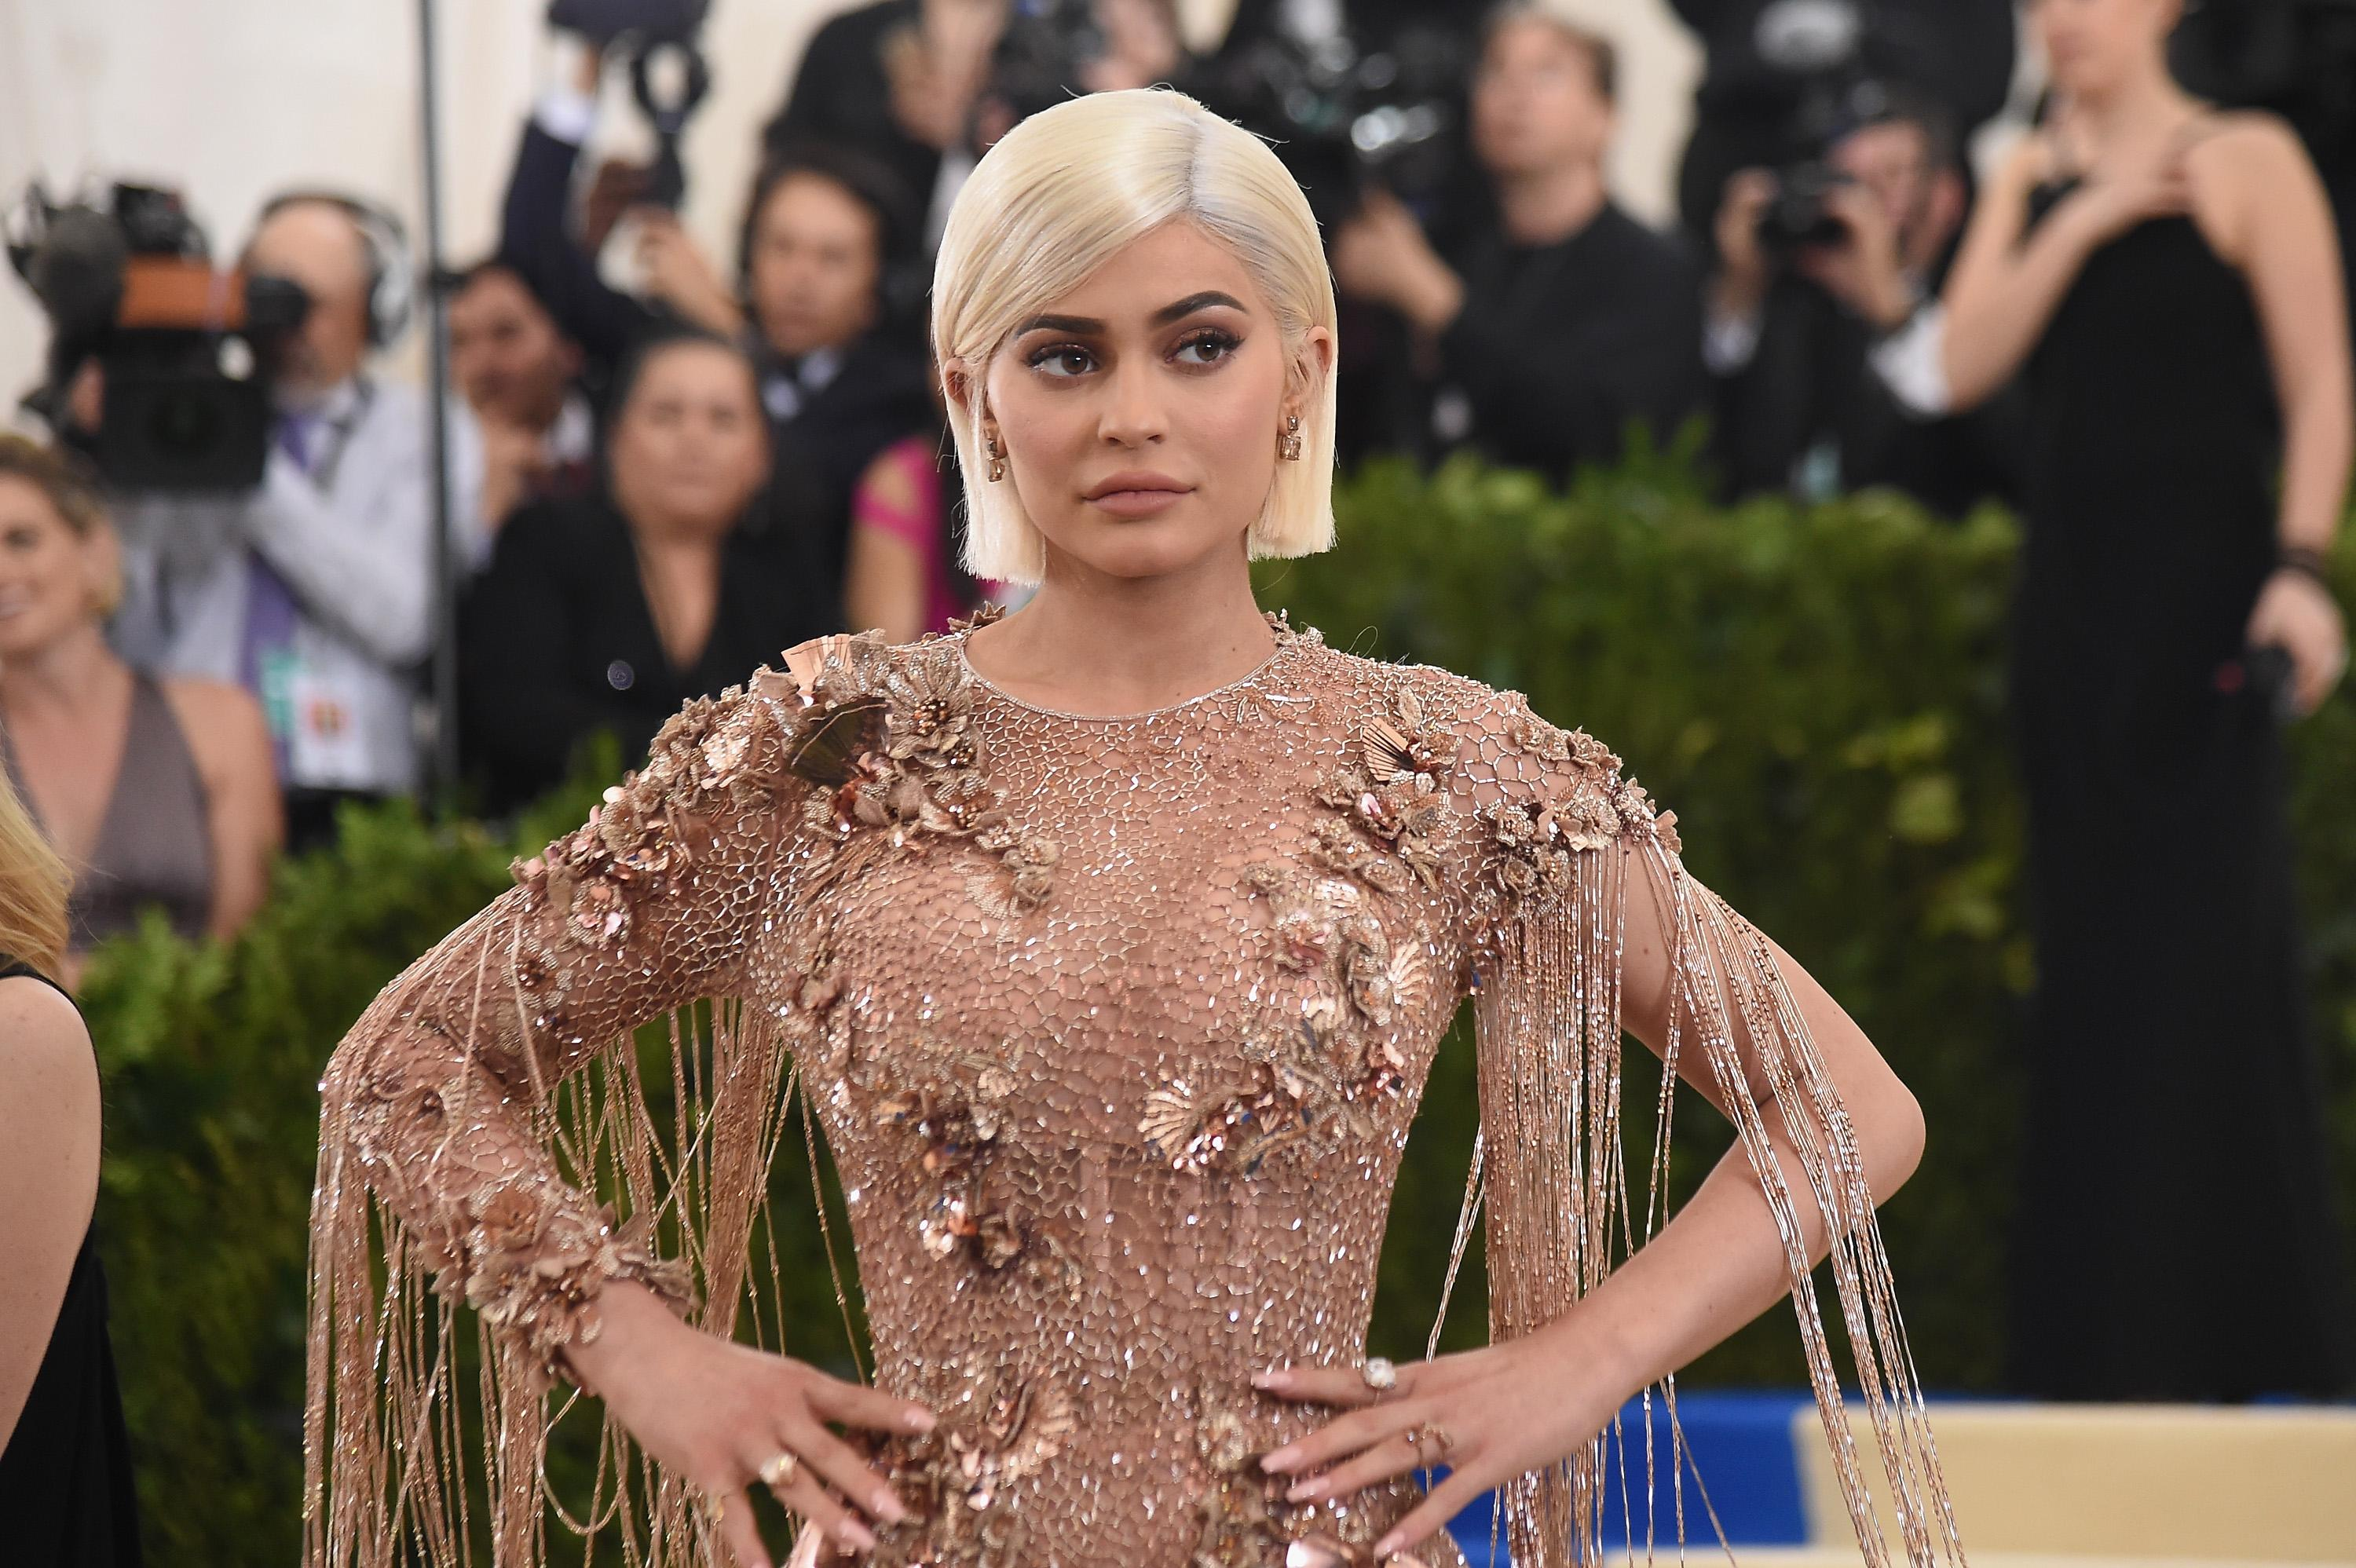 Kylie Jenner Basically Confirms Pregnancy by Throwing Baby Shower for Herself